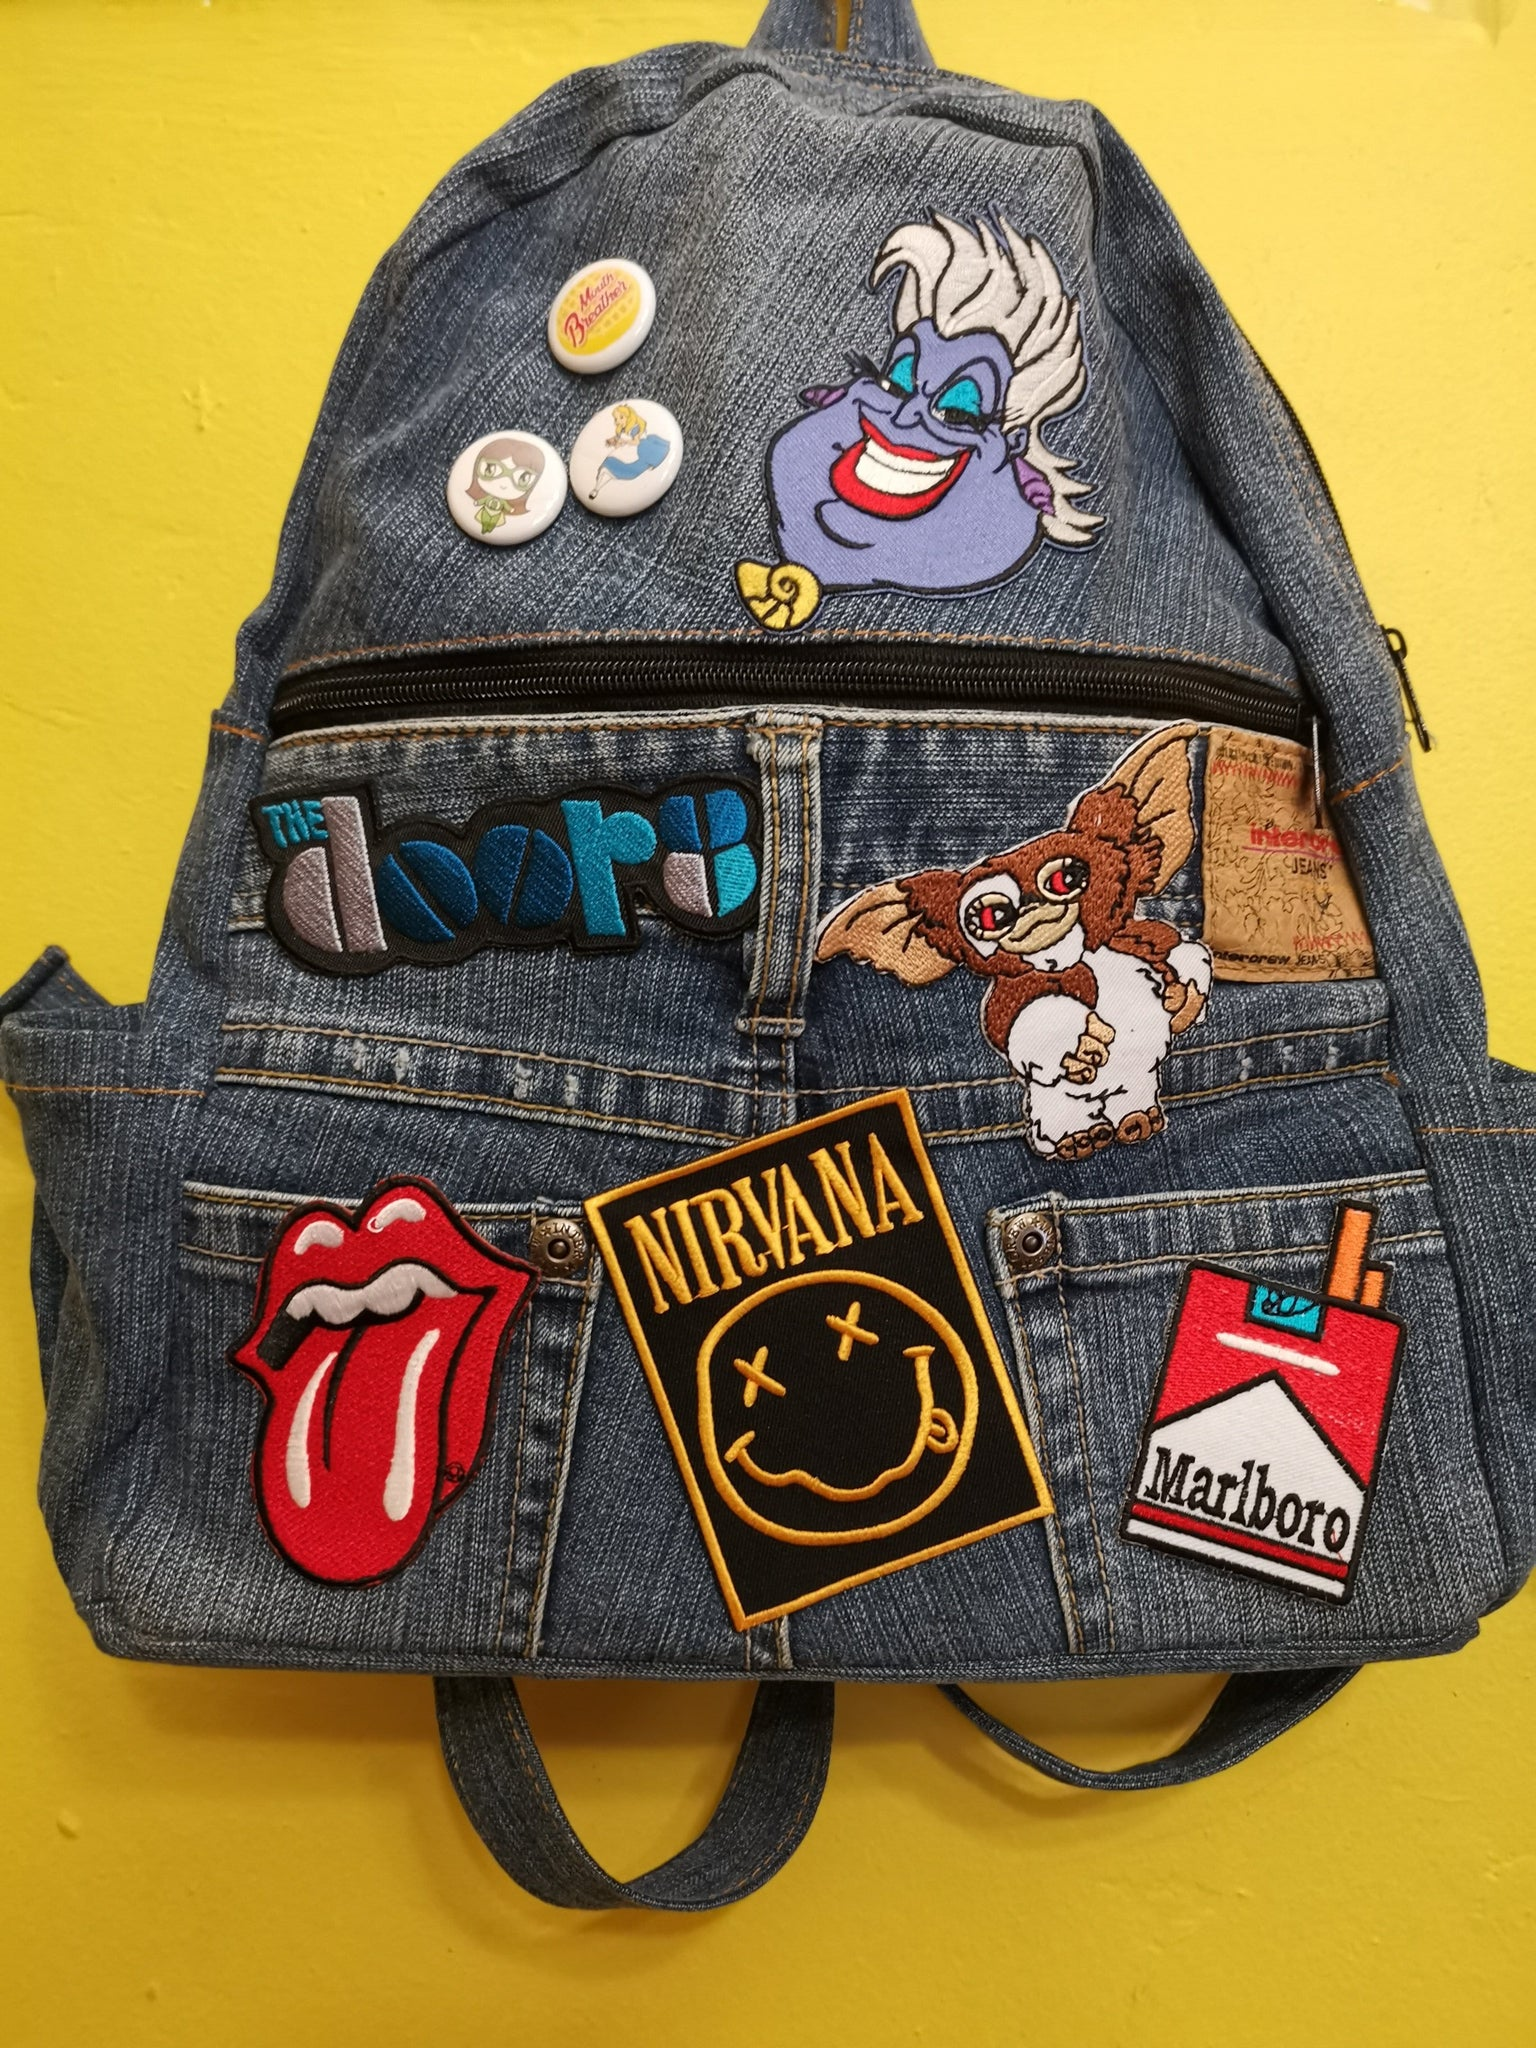 Recycled Denim backpack with patches & pins